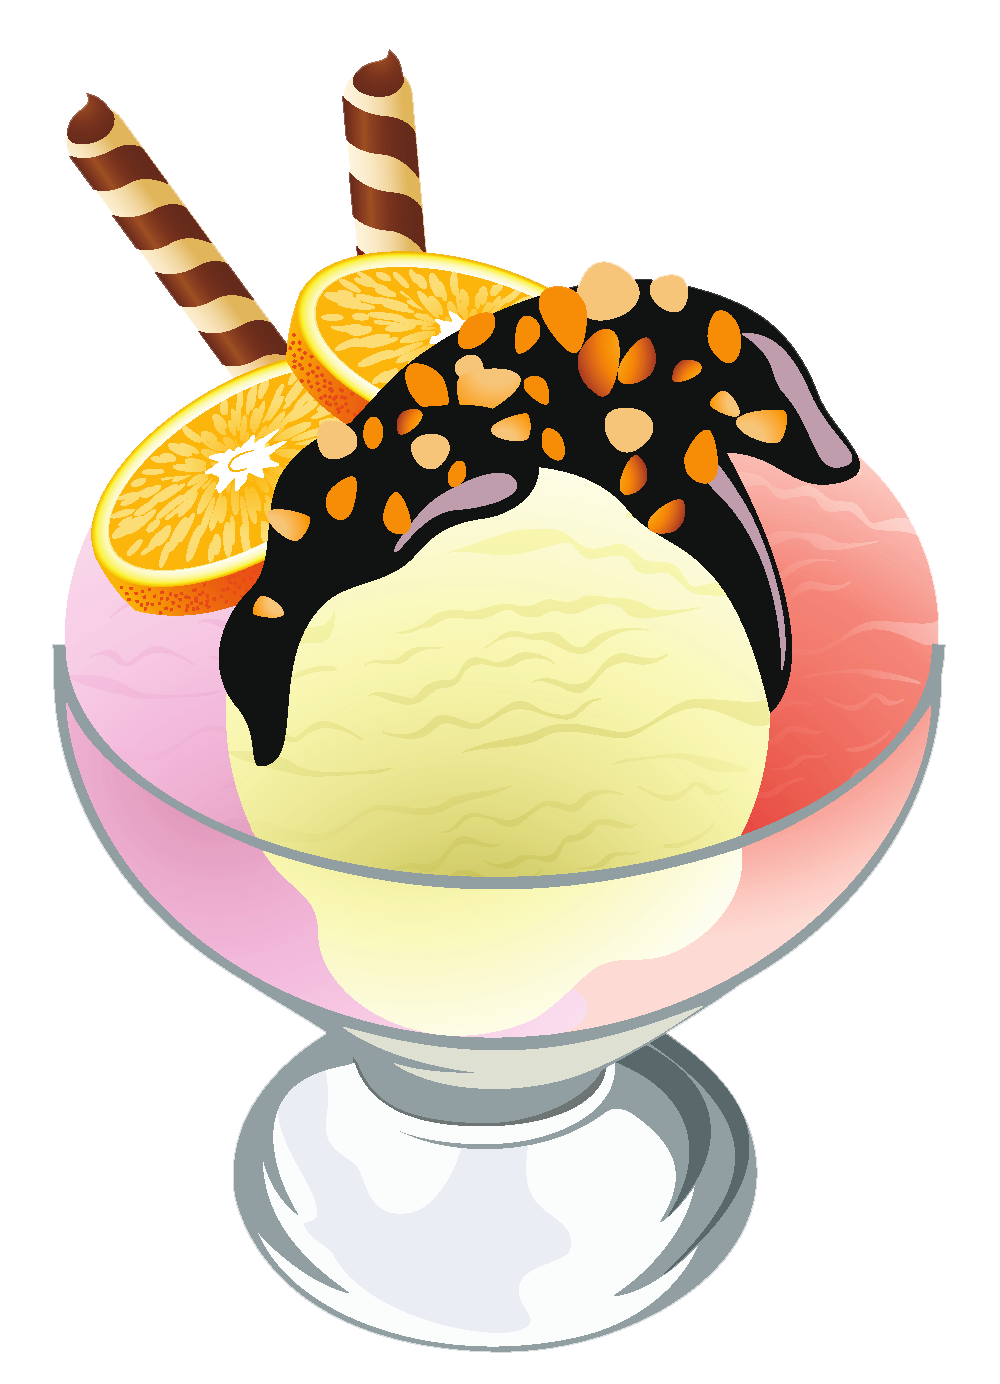 Ice cream sundae transparent. Desserts clipart land